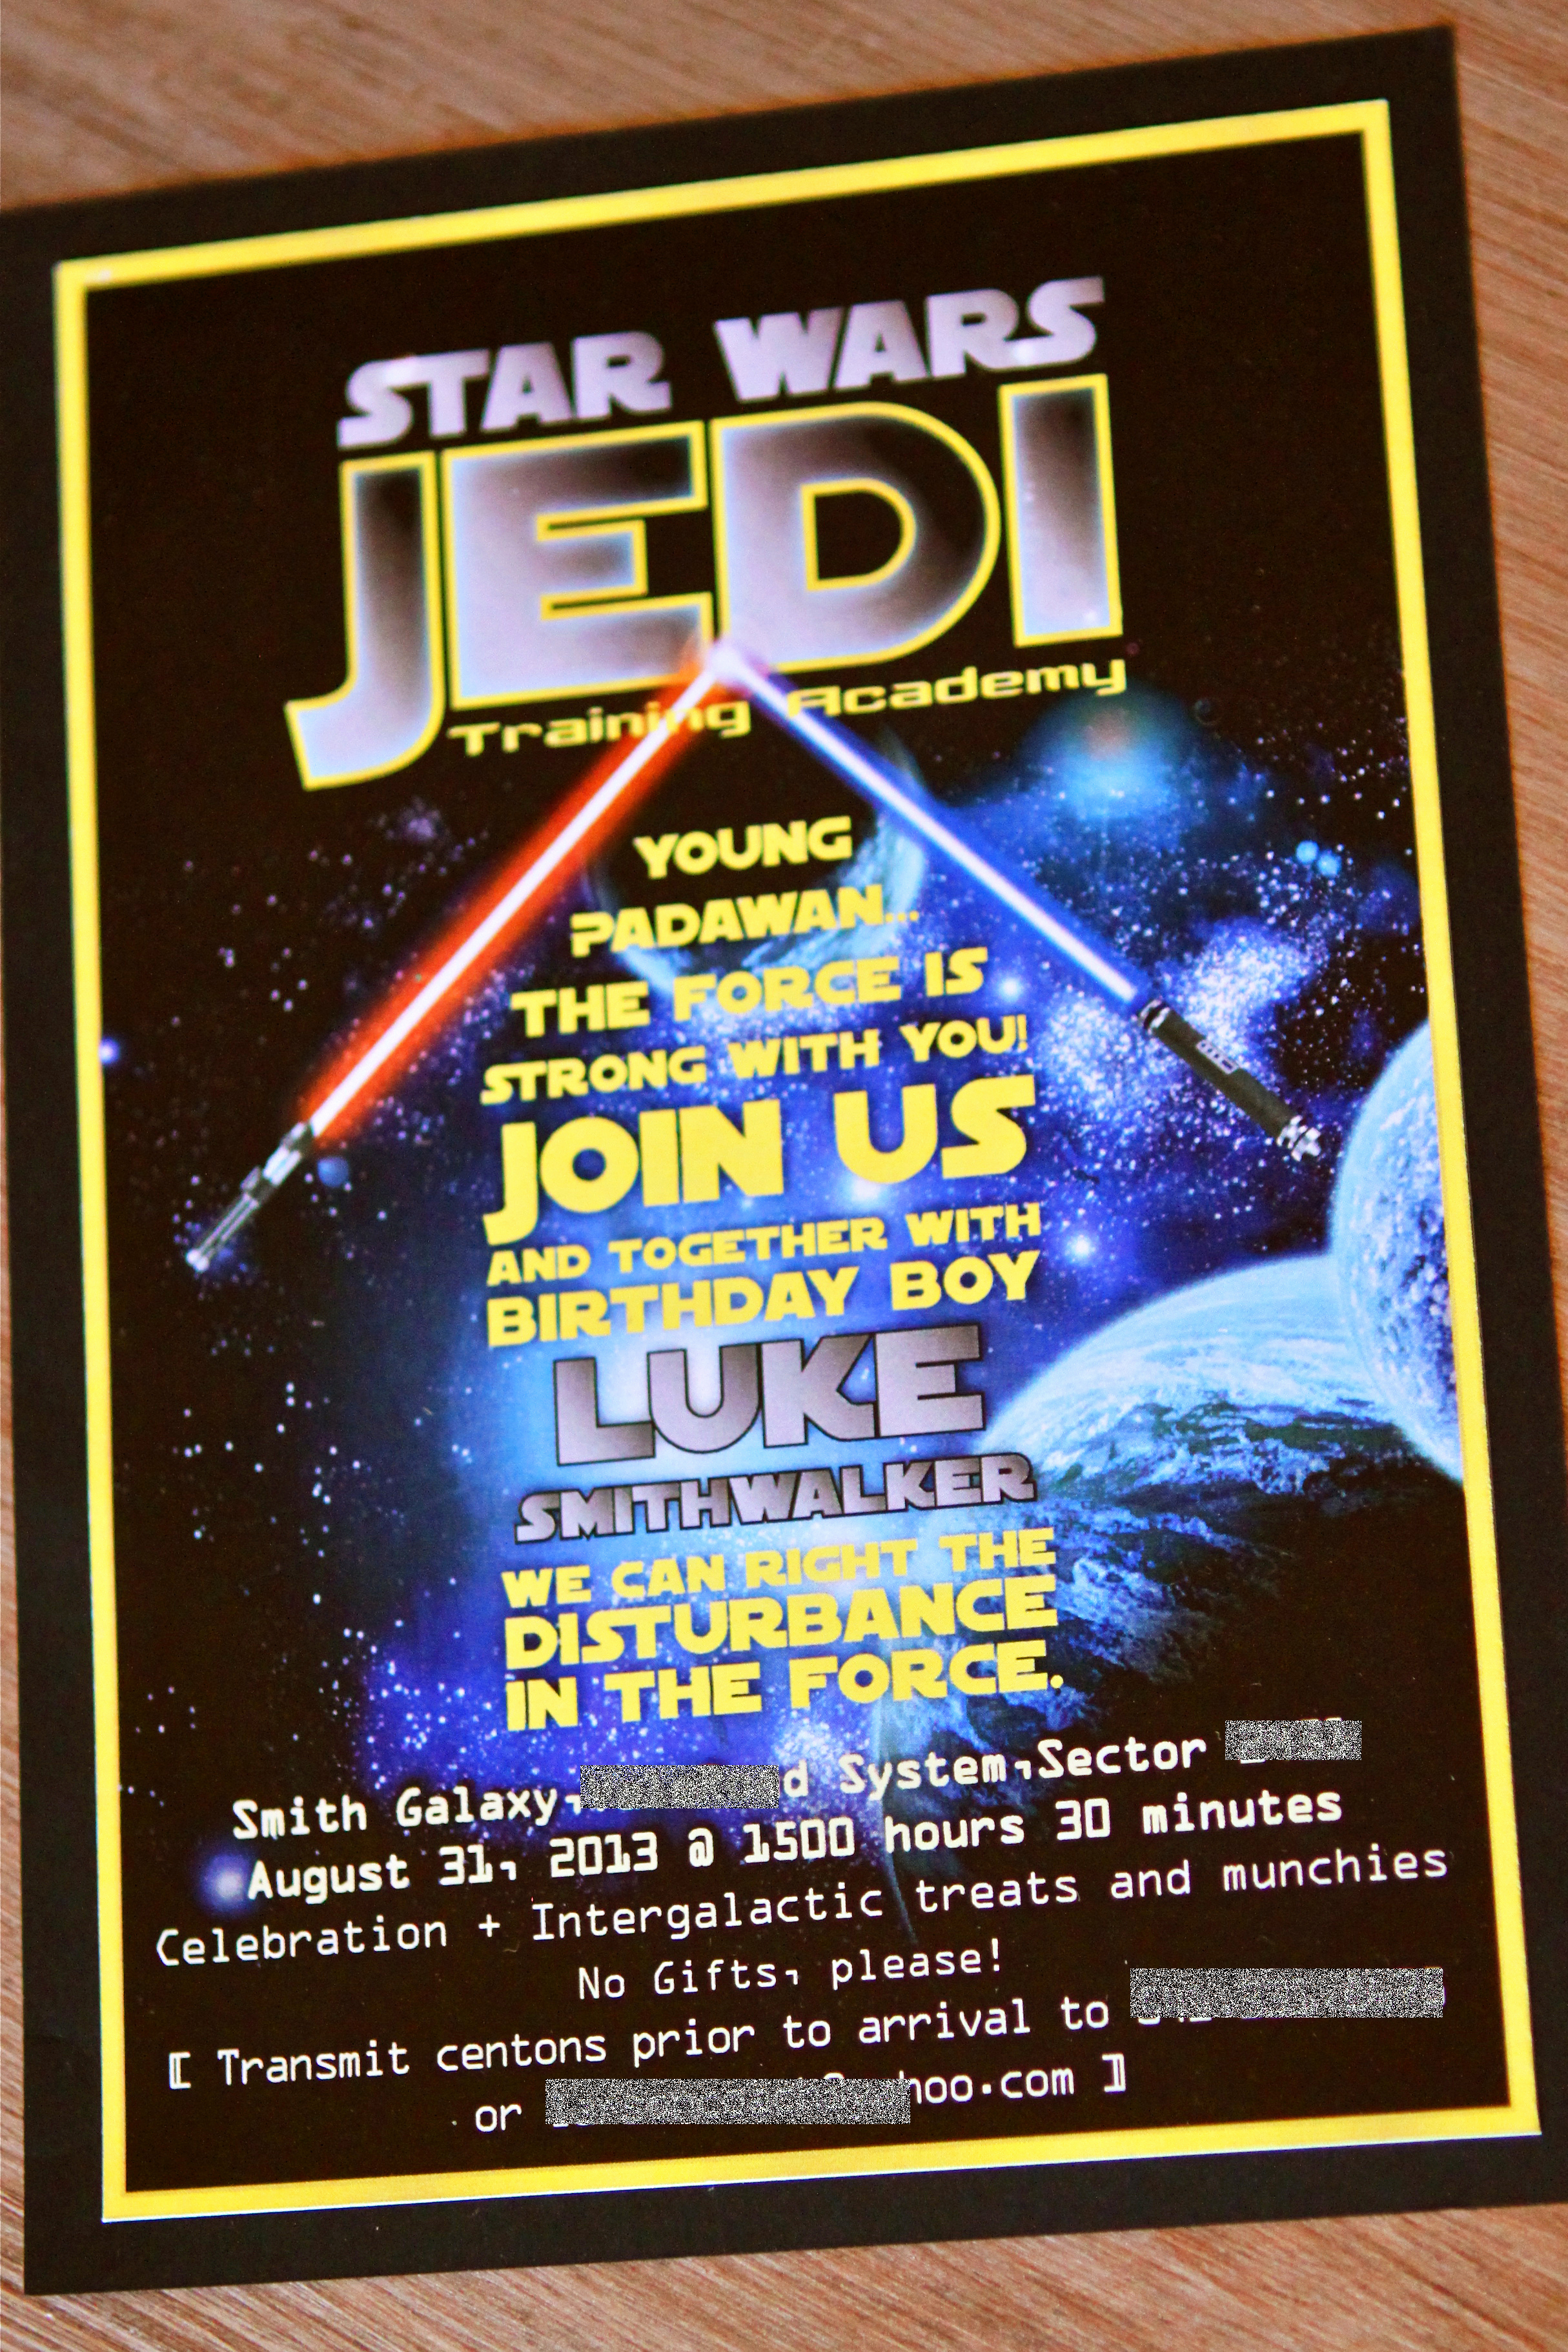 Star Wars Invitation Wording Luxury Jedi Training Party Invitation